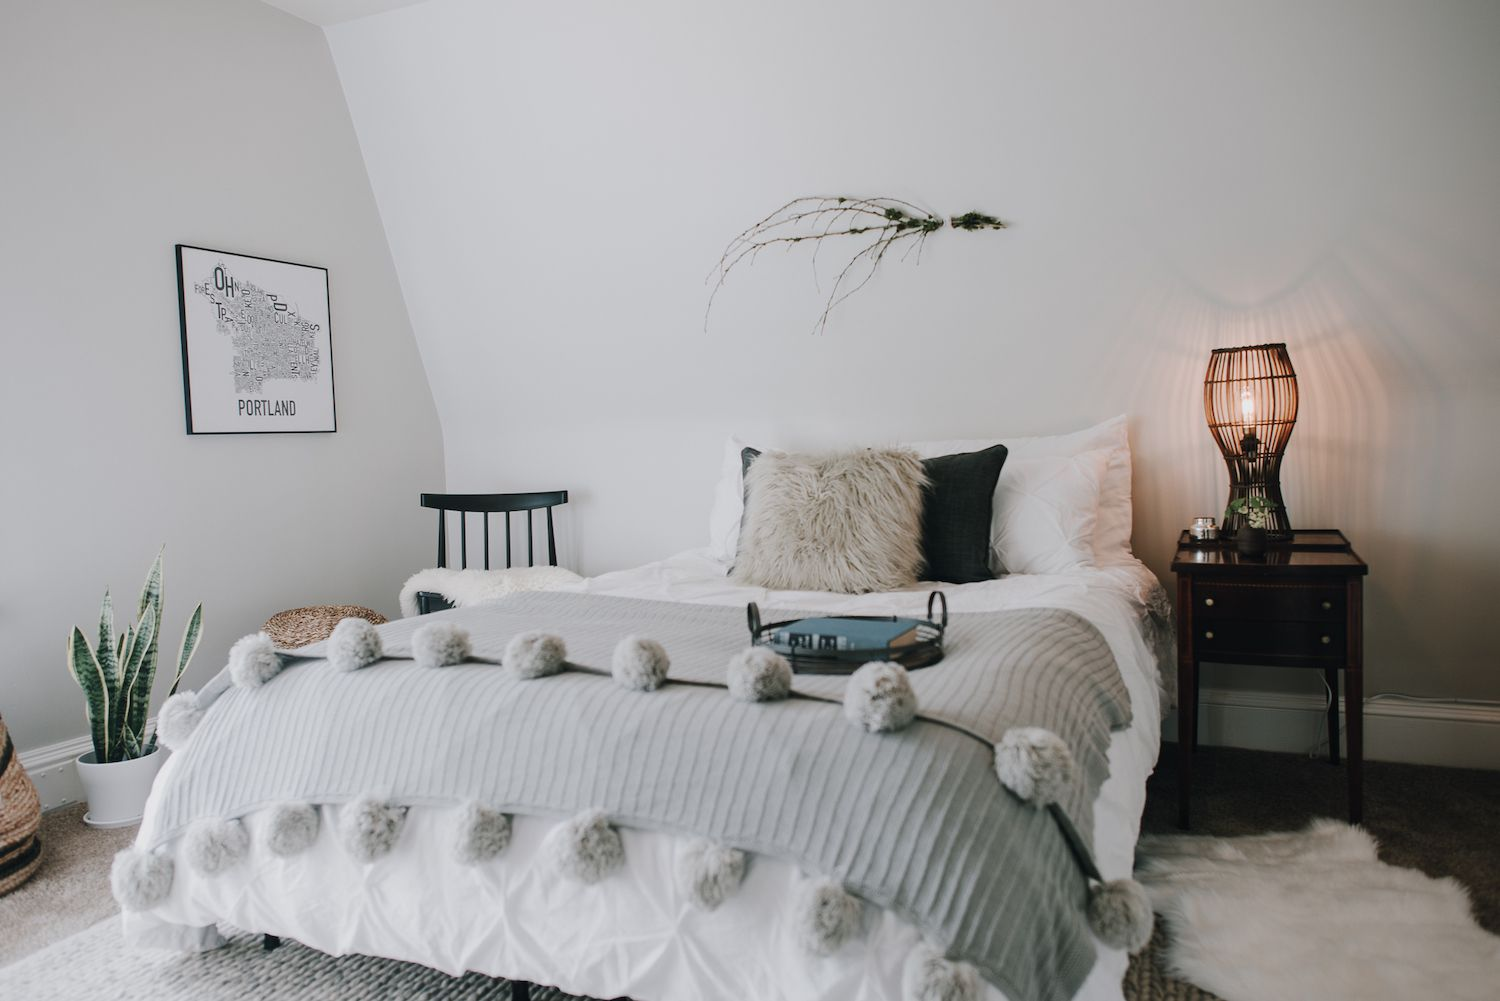 modern bedroom with soft textures: furry pillow, gray blanket with pom pons on the end. Cool tones